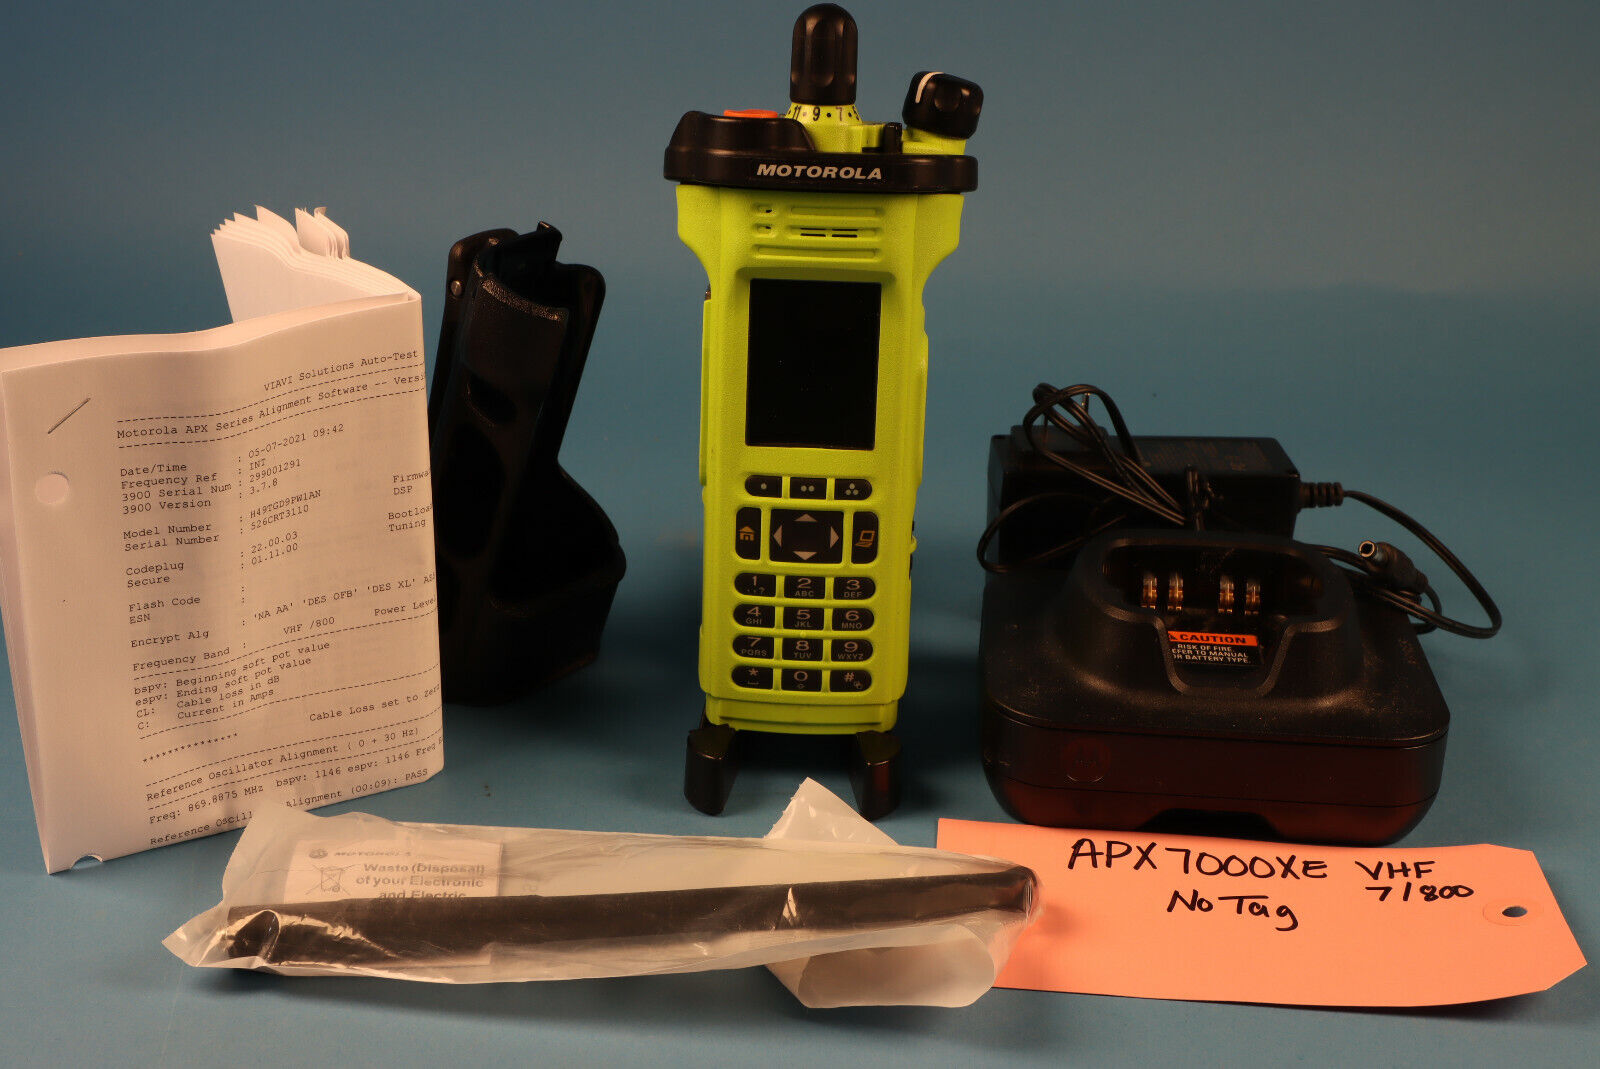 Motorola APX7000XE 700-800 / VHF FPP 5 Algo's w/antenna, charger Green *No Tag. Available Now for 2550.00